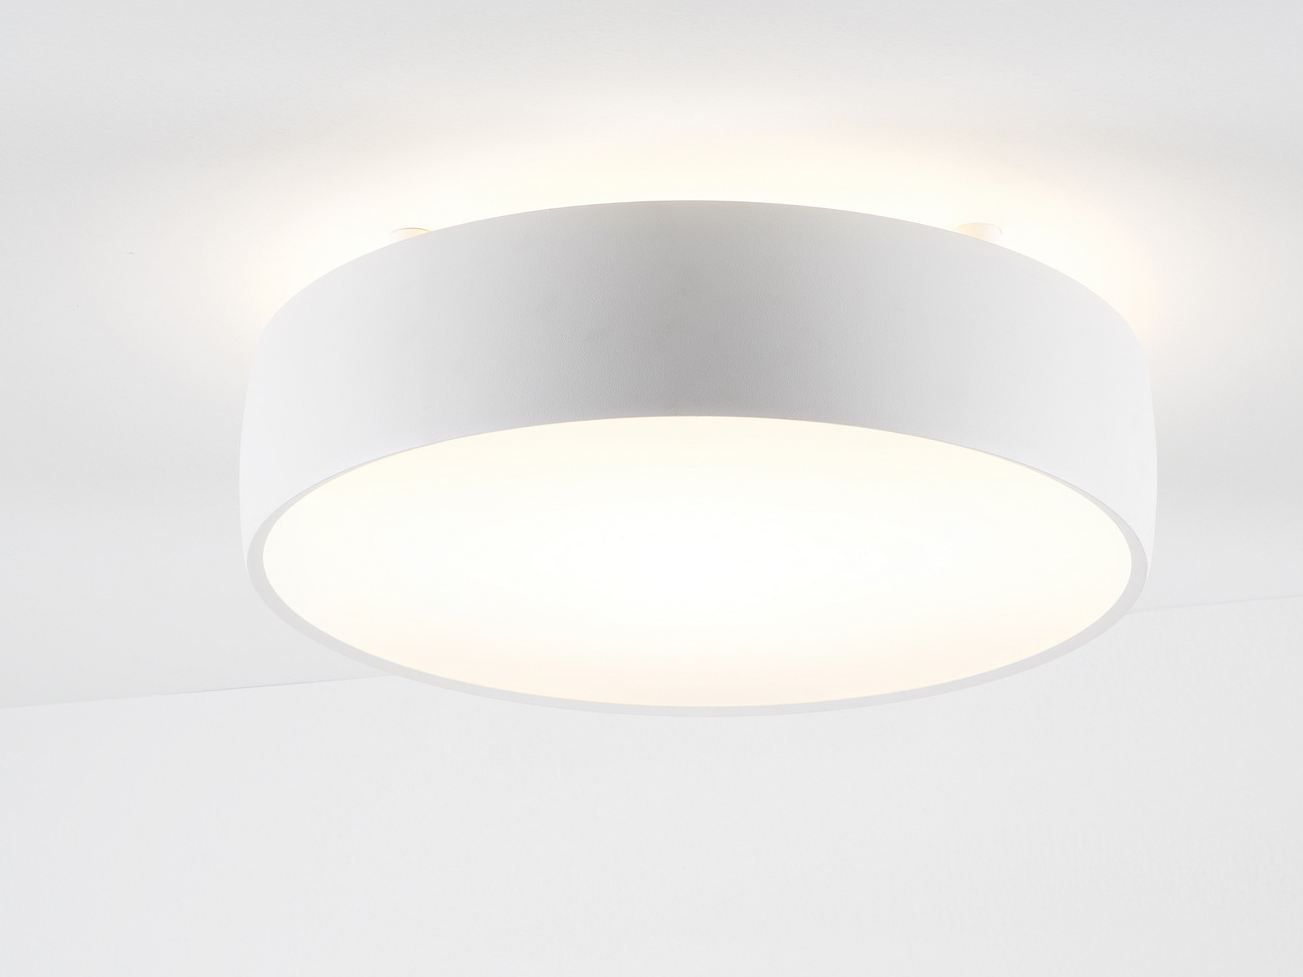 Download The Catalogue And Request Prices Of Flat Moon Ceiling